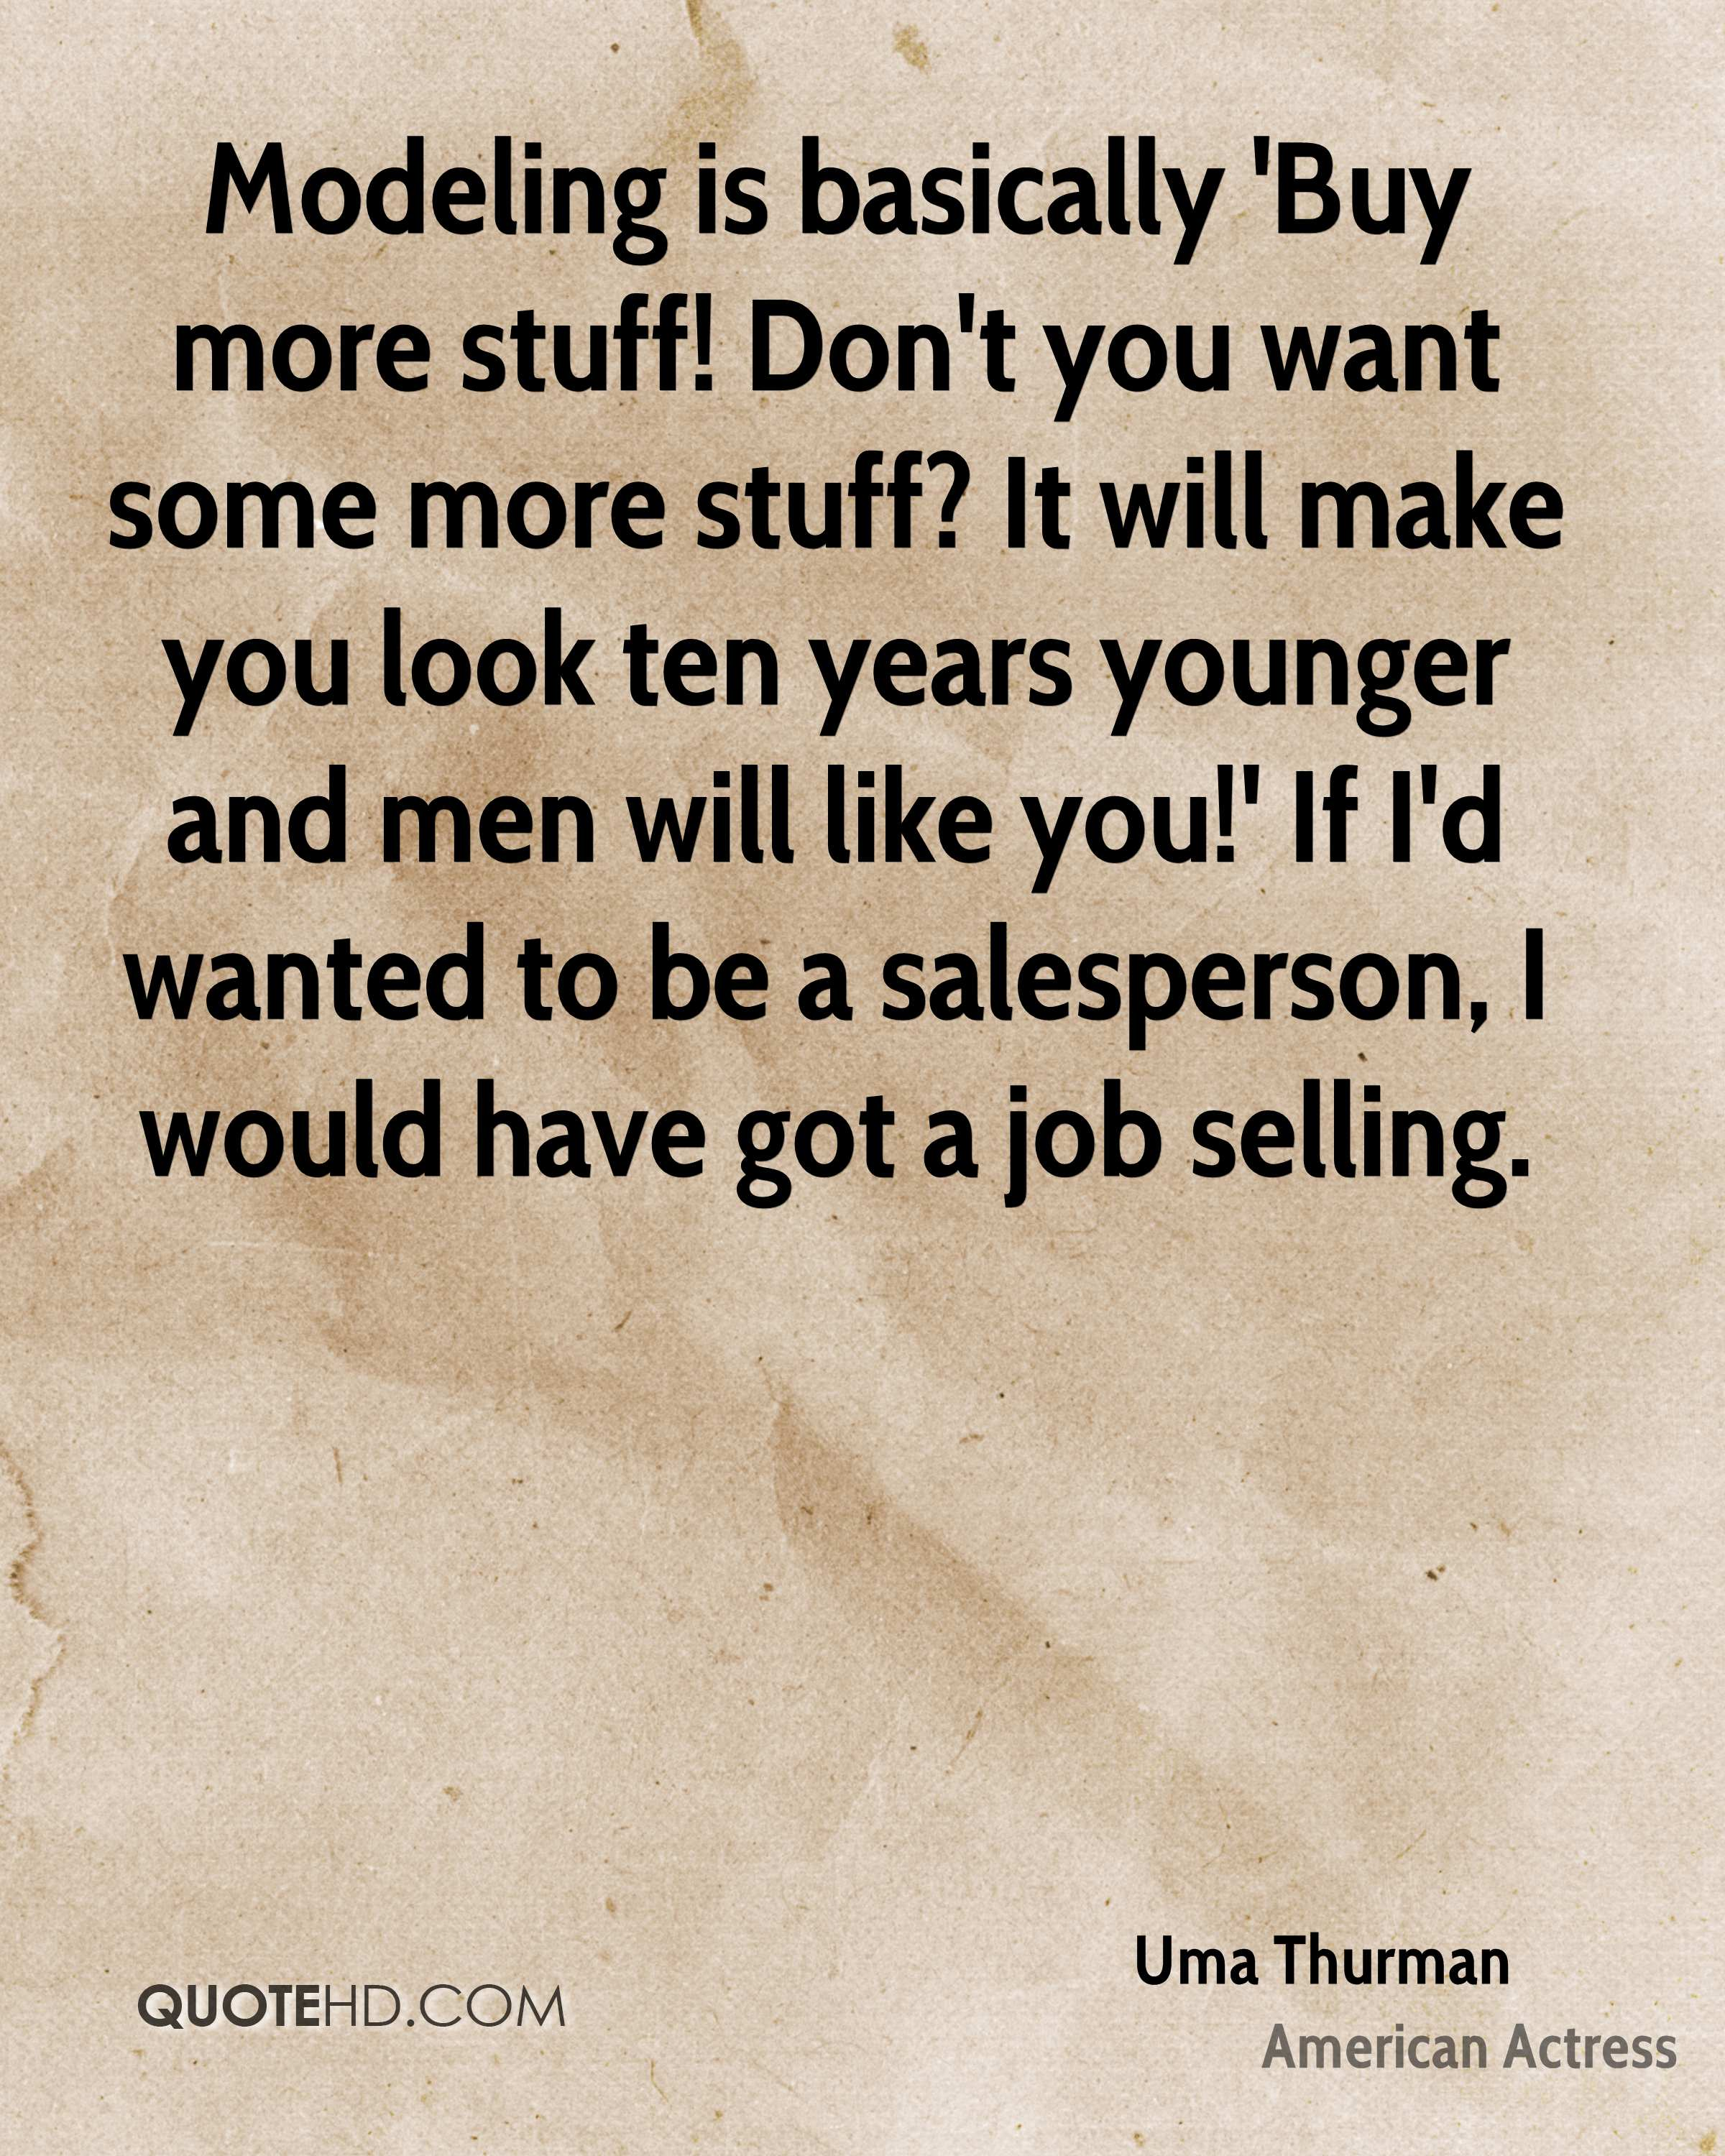 Modeling is basically 'Buy more stuff! Don't you want some more stuff? It will make you look ten years younger and men will like you!' If I'd wanted to be a salesperson, I would have got a job selling.